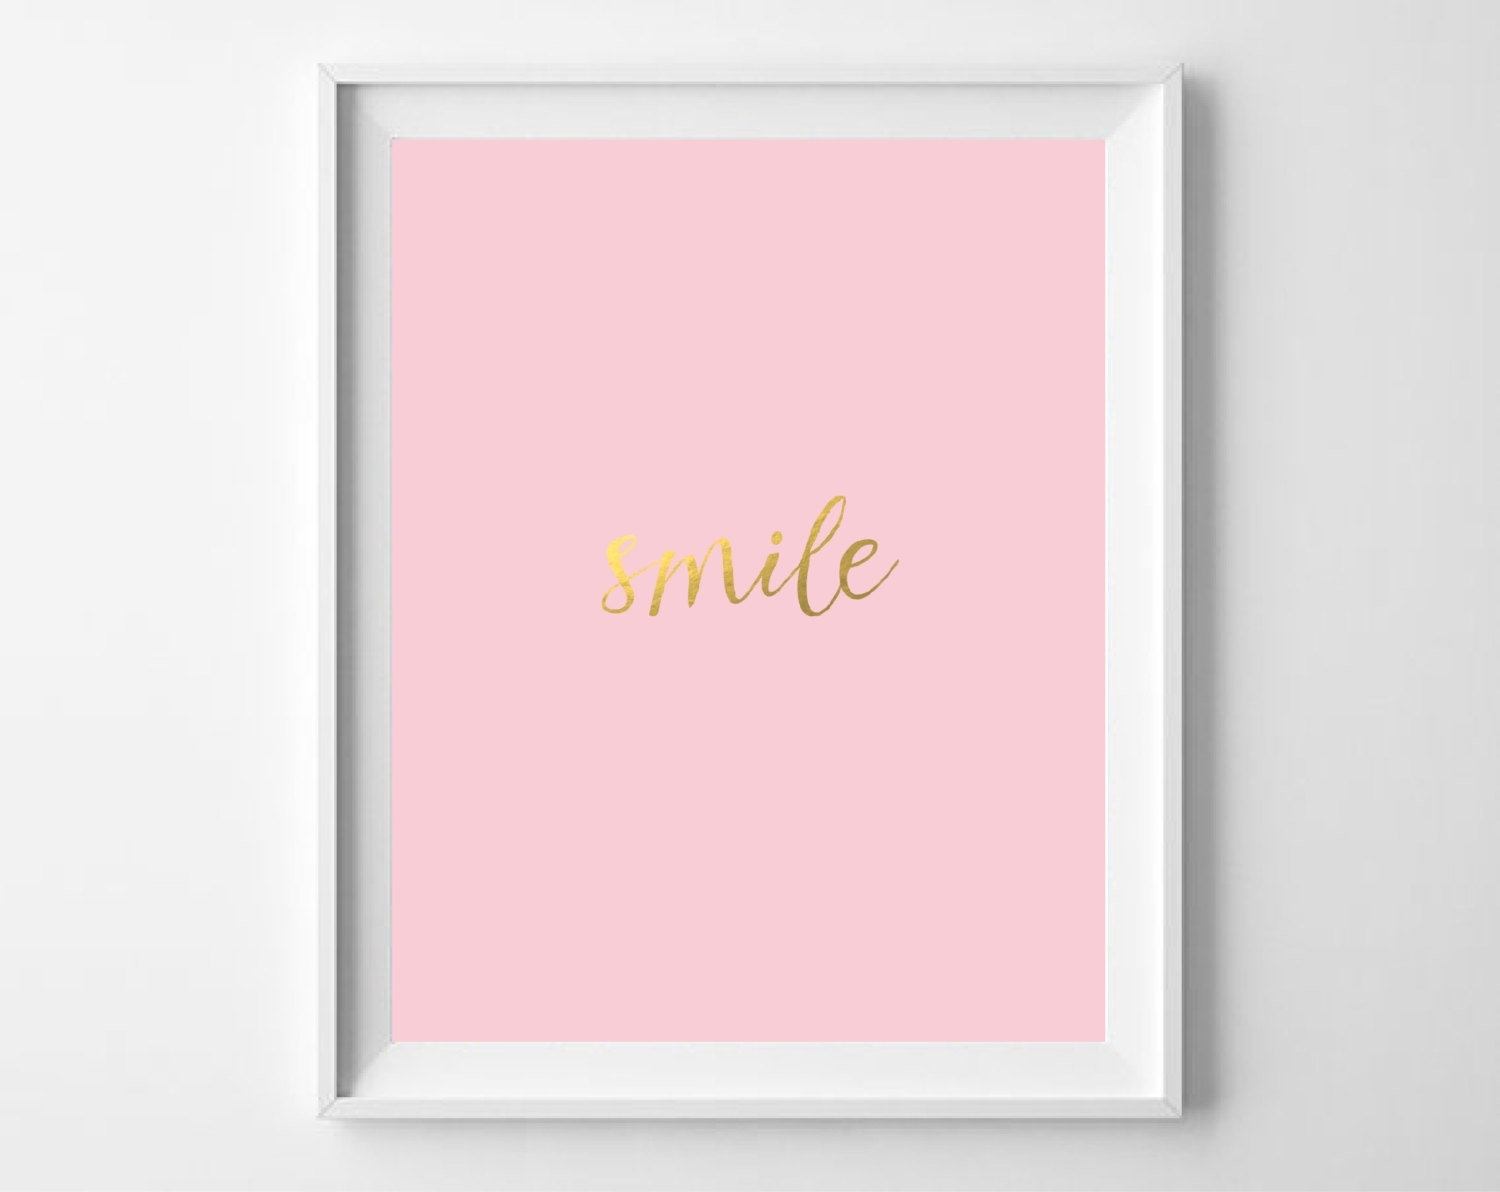 Smile Gold Foil Print Printable Blush Pink Gold Wall Art | Etsy Pertaining To 2018 Gold Wall Art (View 10 of 15)